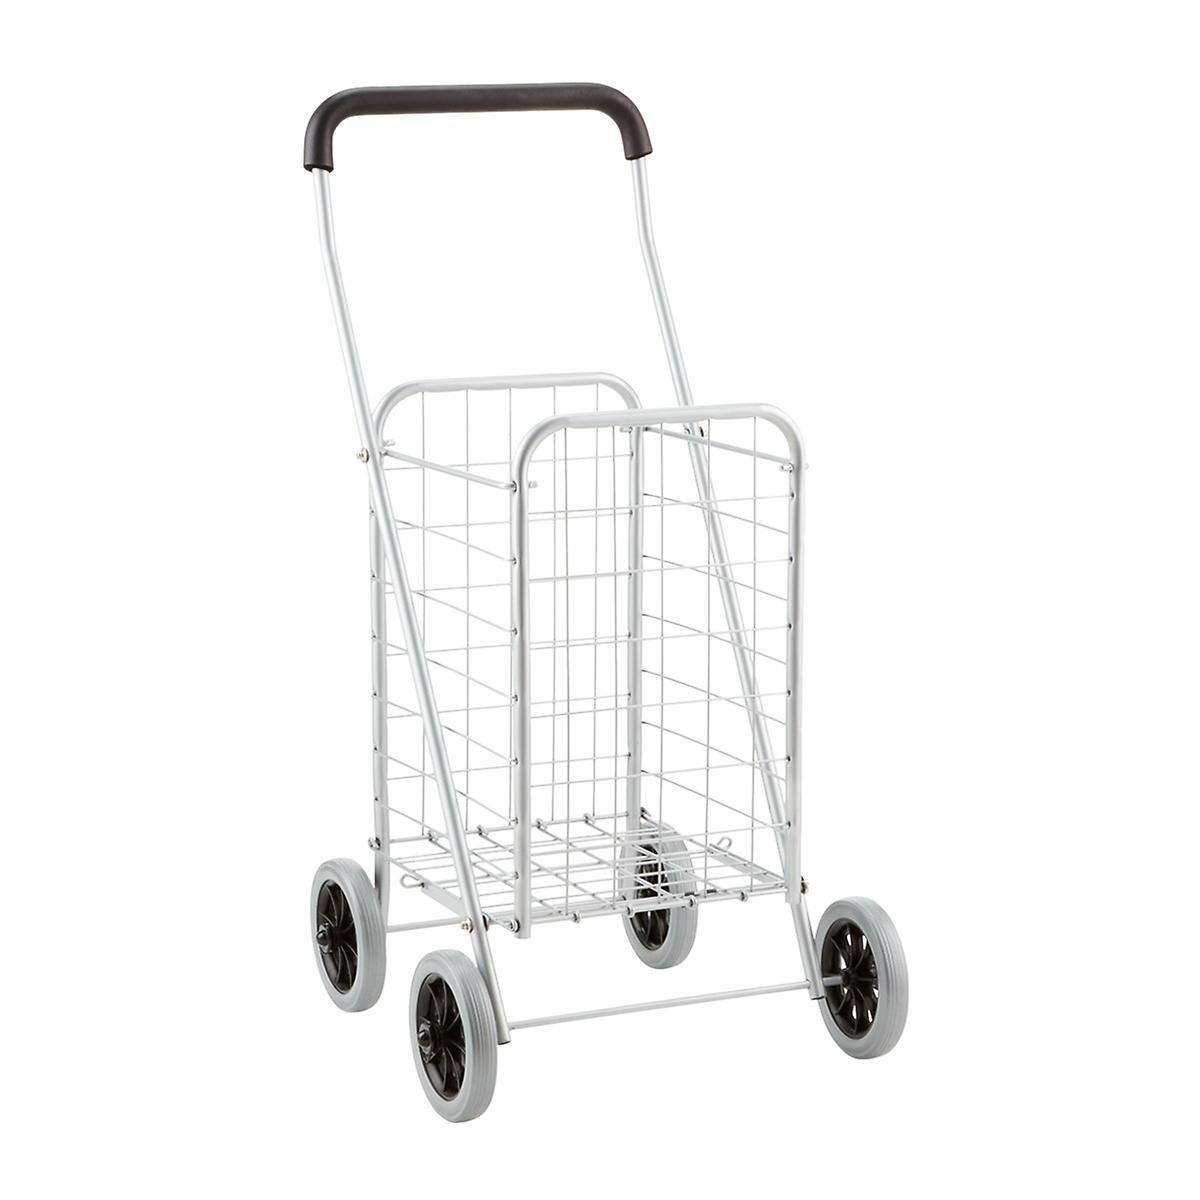 Personal Shopping Cart - Steel Shopping Cart | The Container Store